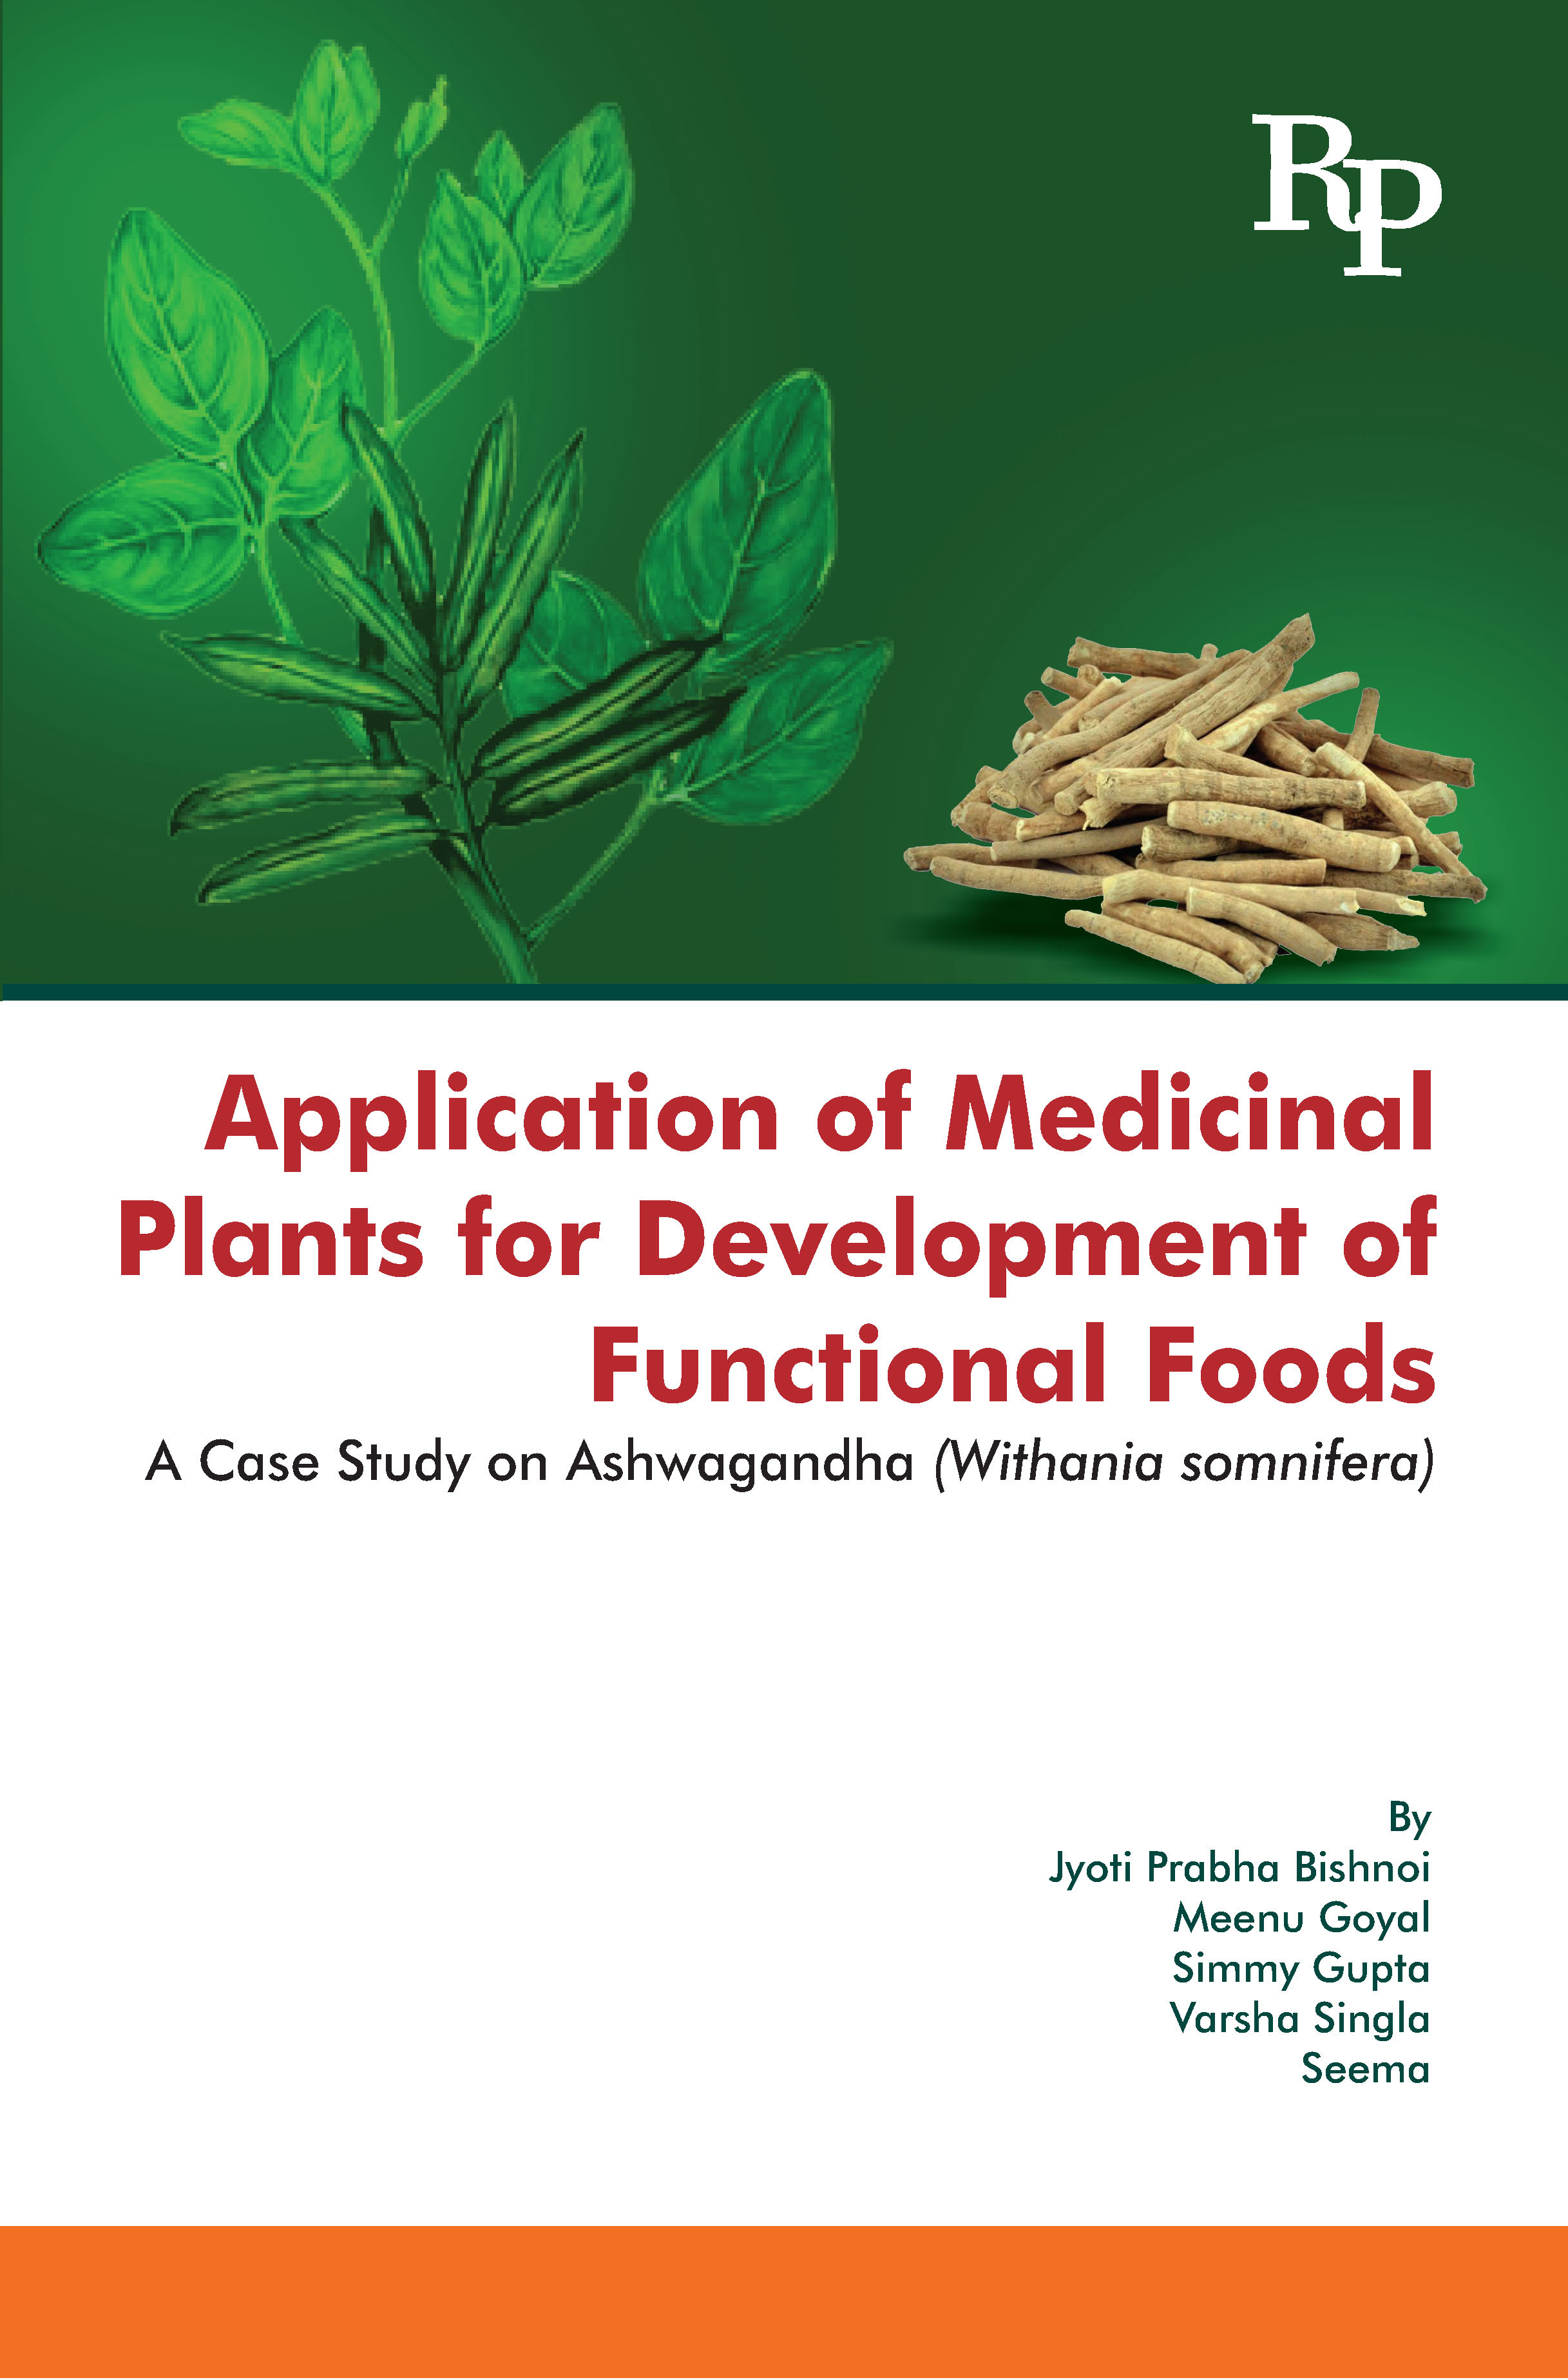 Application of Medicinal Plants for Development of Functional Foods A Case Study on Ashwagandha (Withania Somnifera)